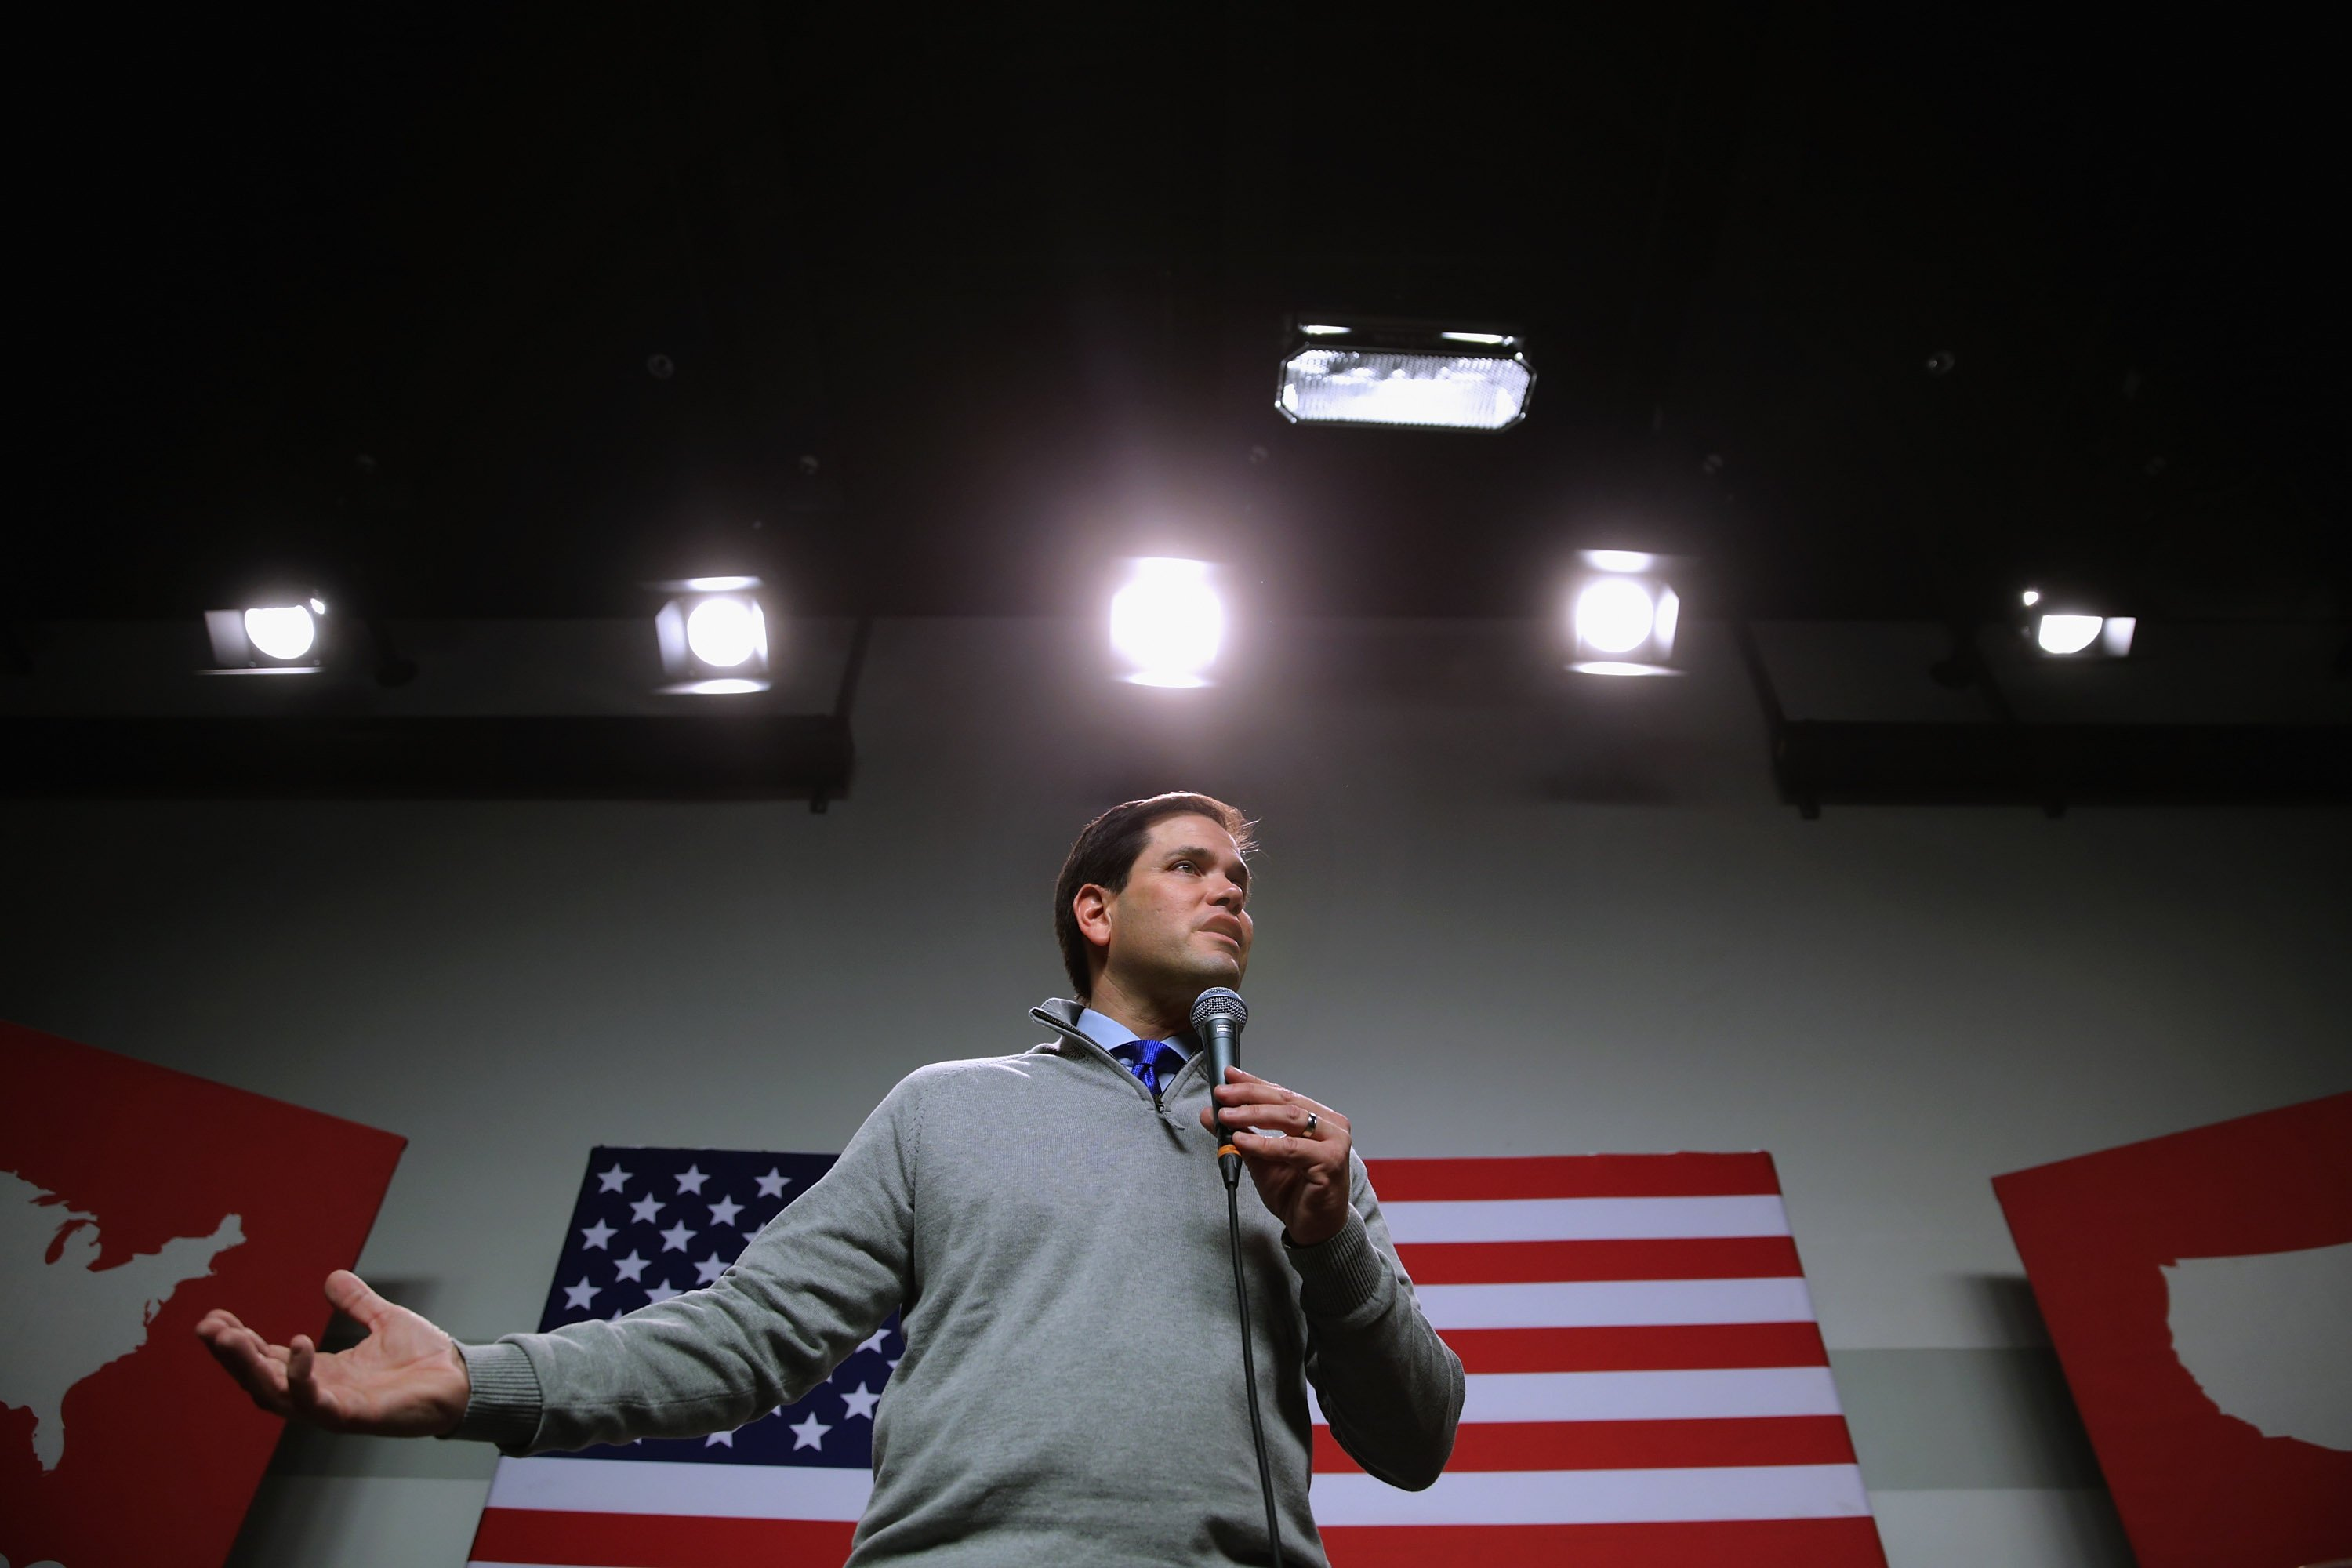 Sen. Marco Rubio holds a campaign town hall event at the New Hampshire Institute of Politics at St. Anselm College in Manchester, N.H. on Feb. 4, 2016.